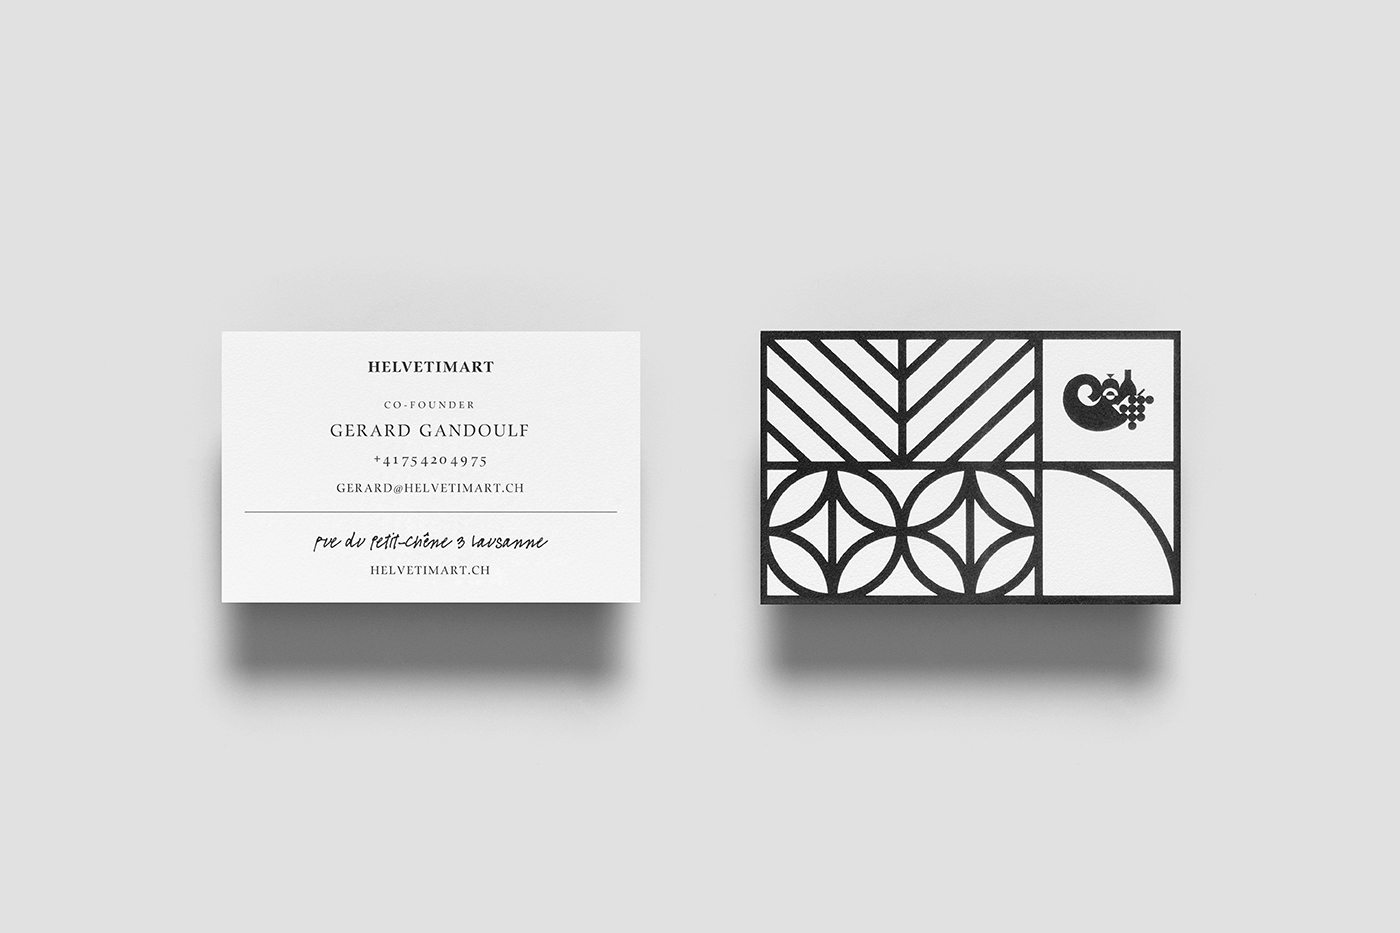 Brand identity and business cards by Anagrama for Lausanne-based independent food and speciality supermarket Helvetimart